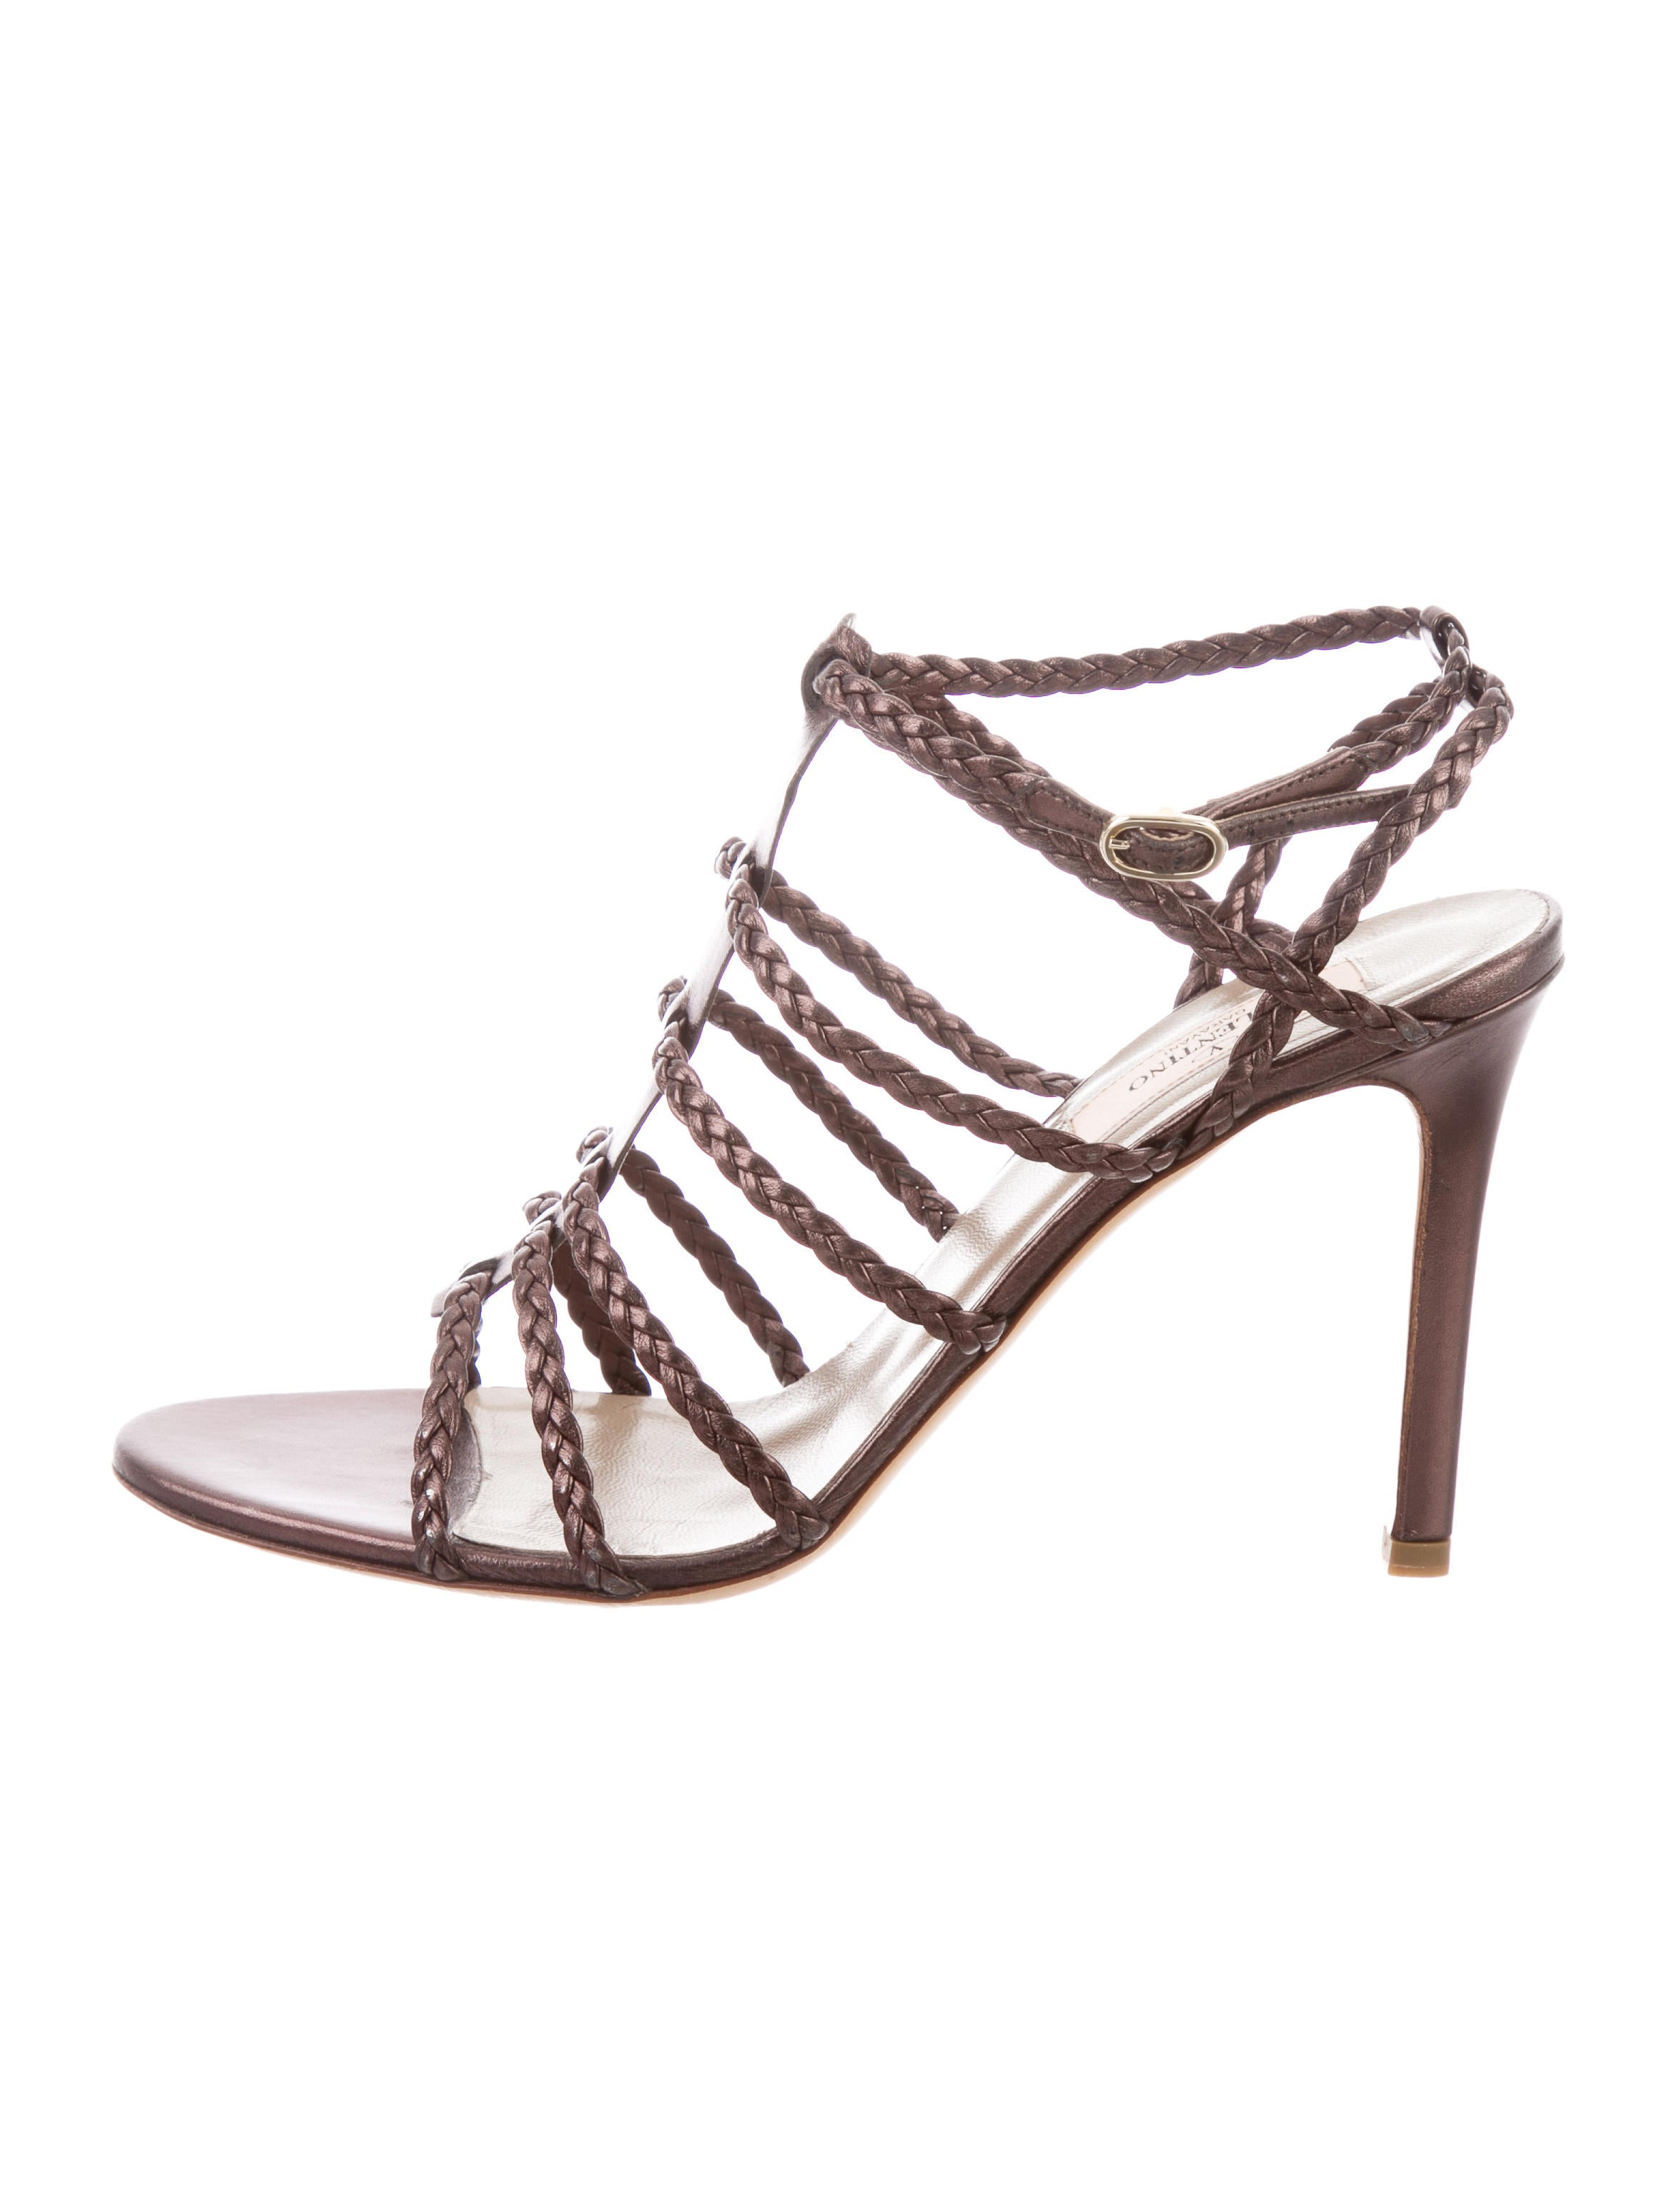 newest sale online Valentino Braided Cage Sandals discount shop for ZjuHurxU1